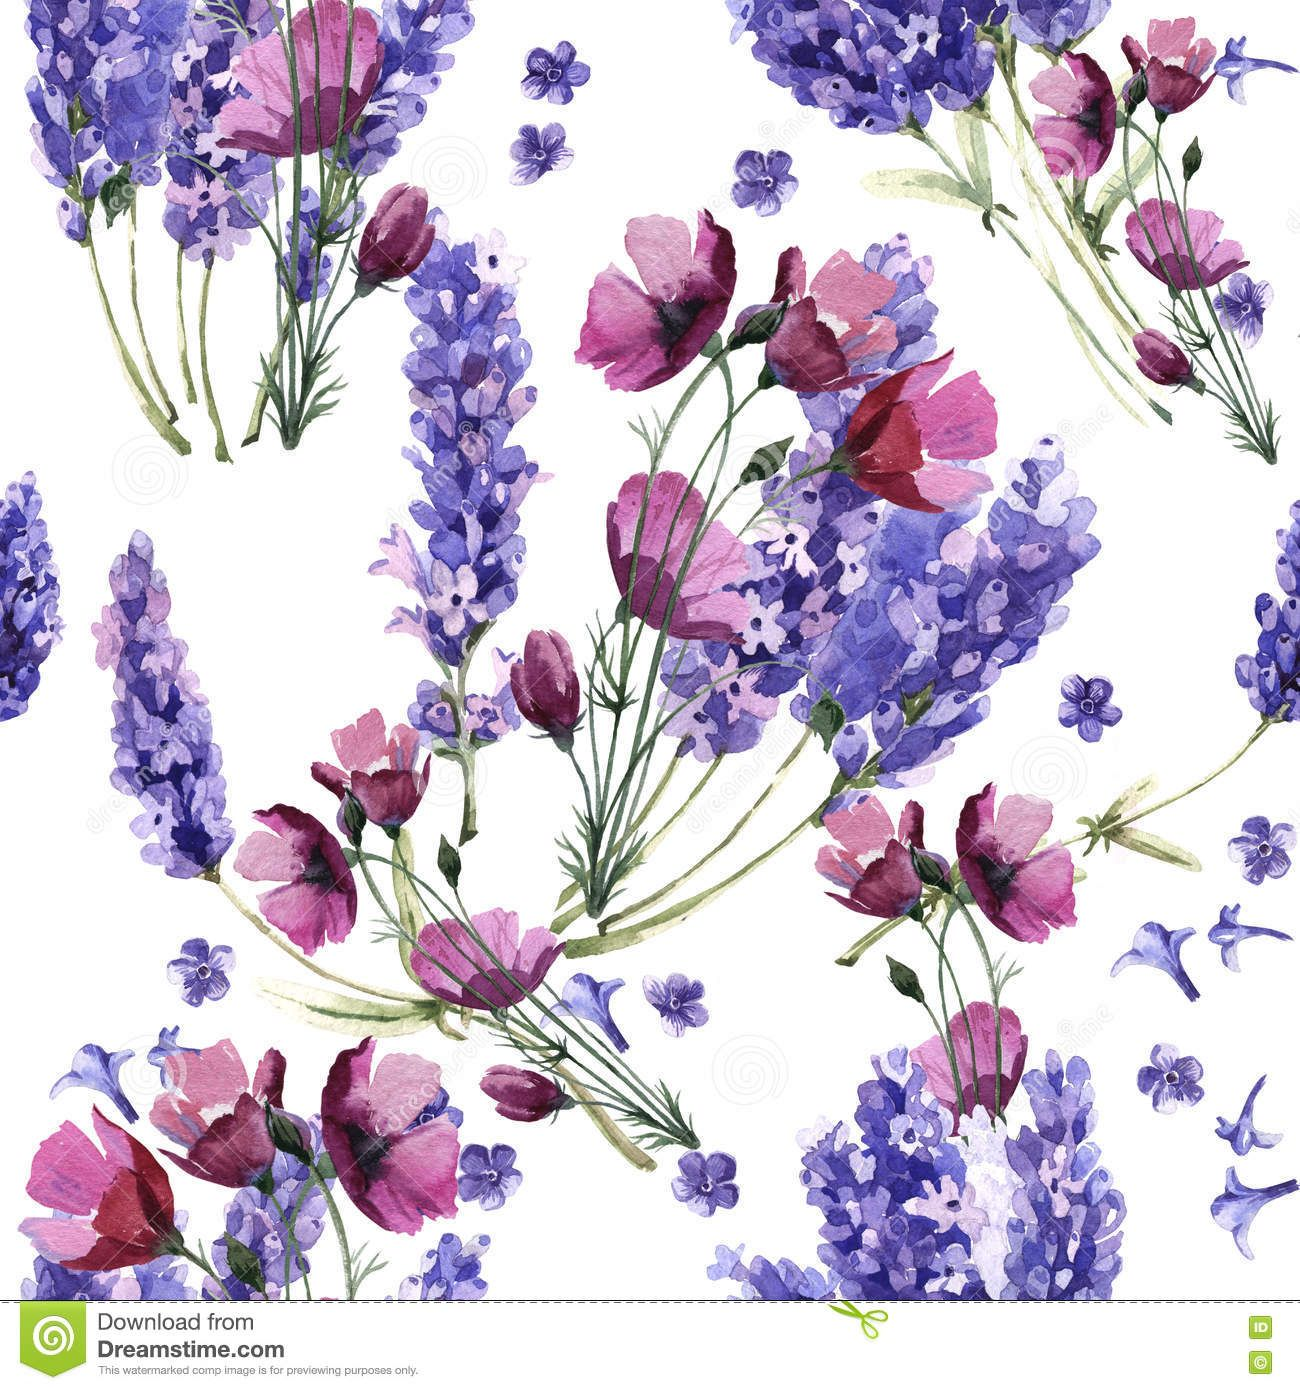 Wildflower Lavender Flower Pattern In A Watercolor Style Isolated Illustration About Summer Lavender Pa Flower Patterns Watercolor Pattern Lilac Background